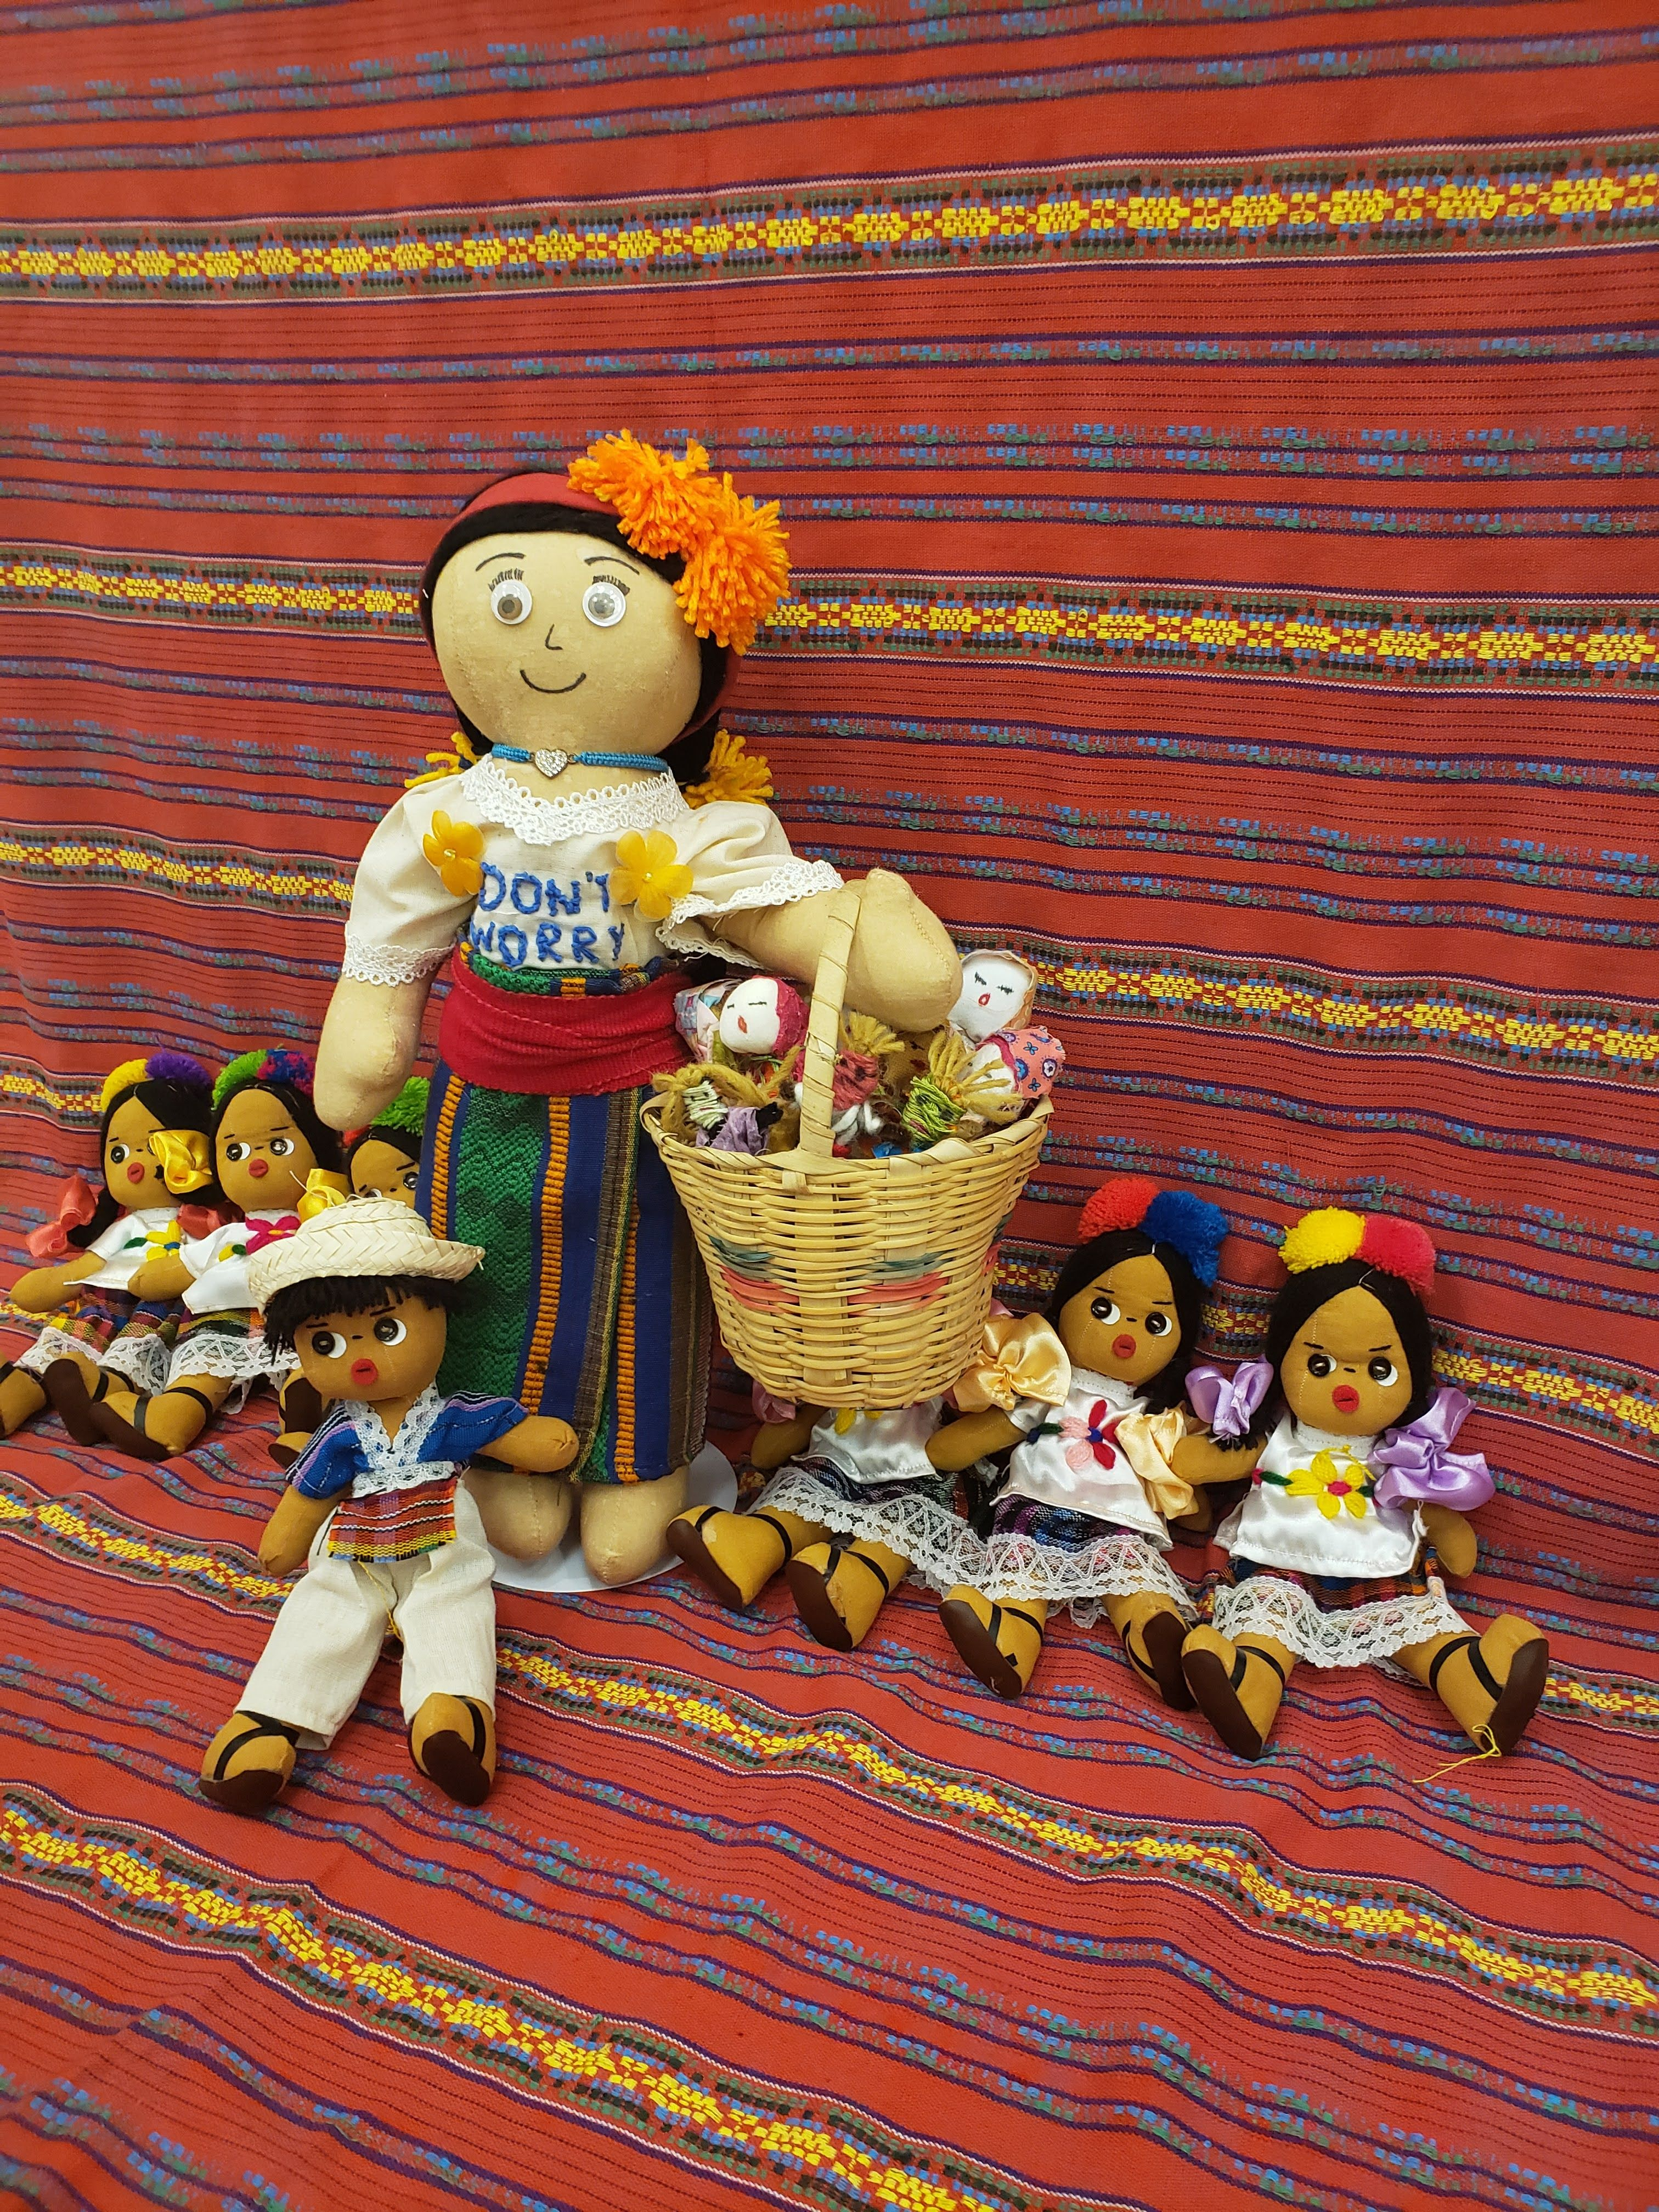 The Worry dolls come to Kingston